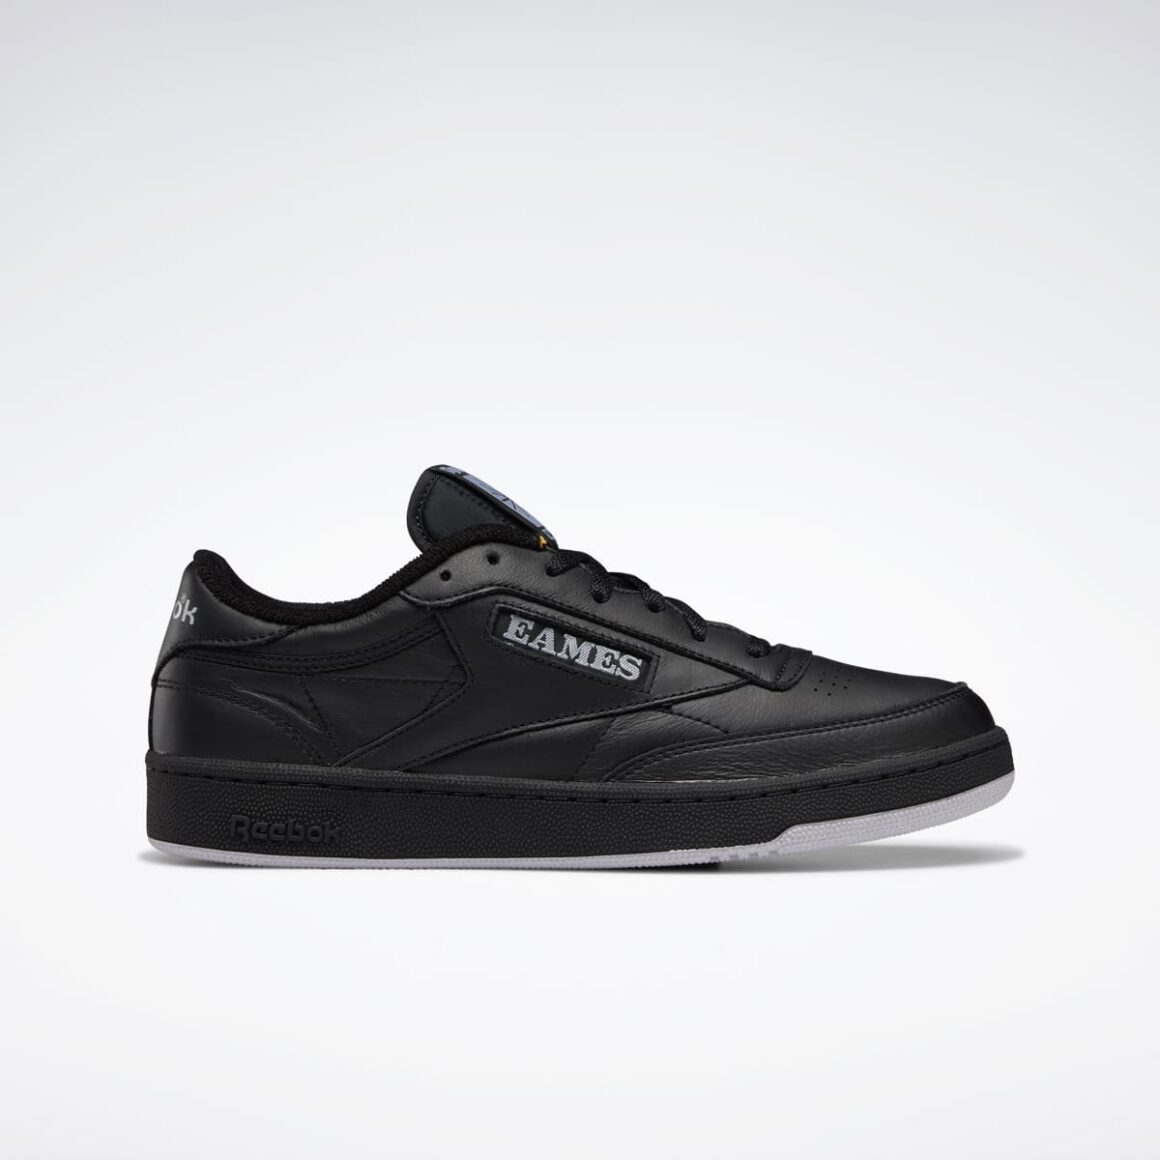 Reebok x Eames Club C Montone Pack GY1067 Lateral